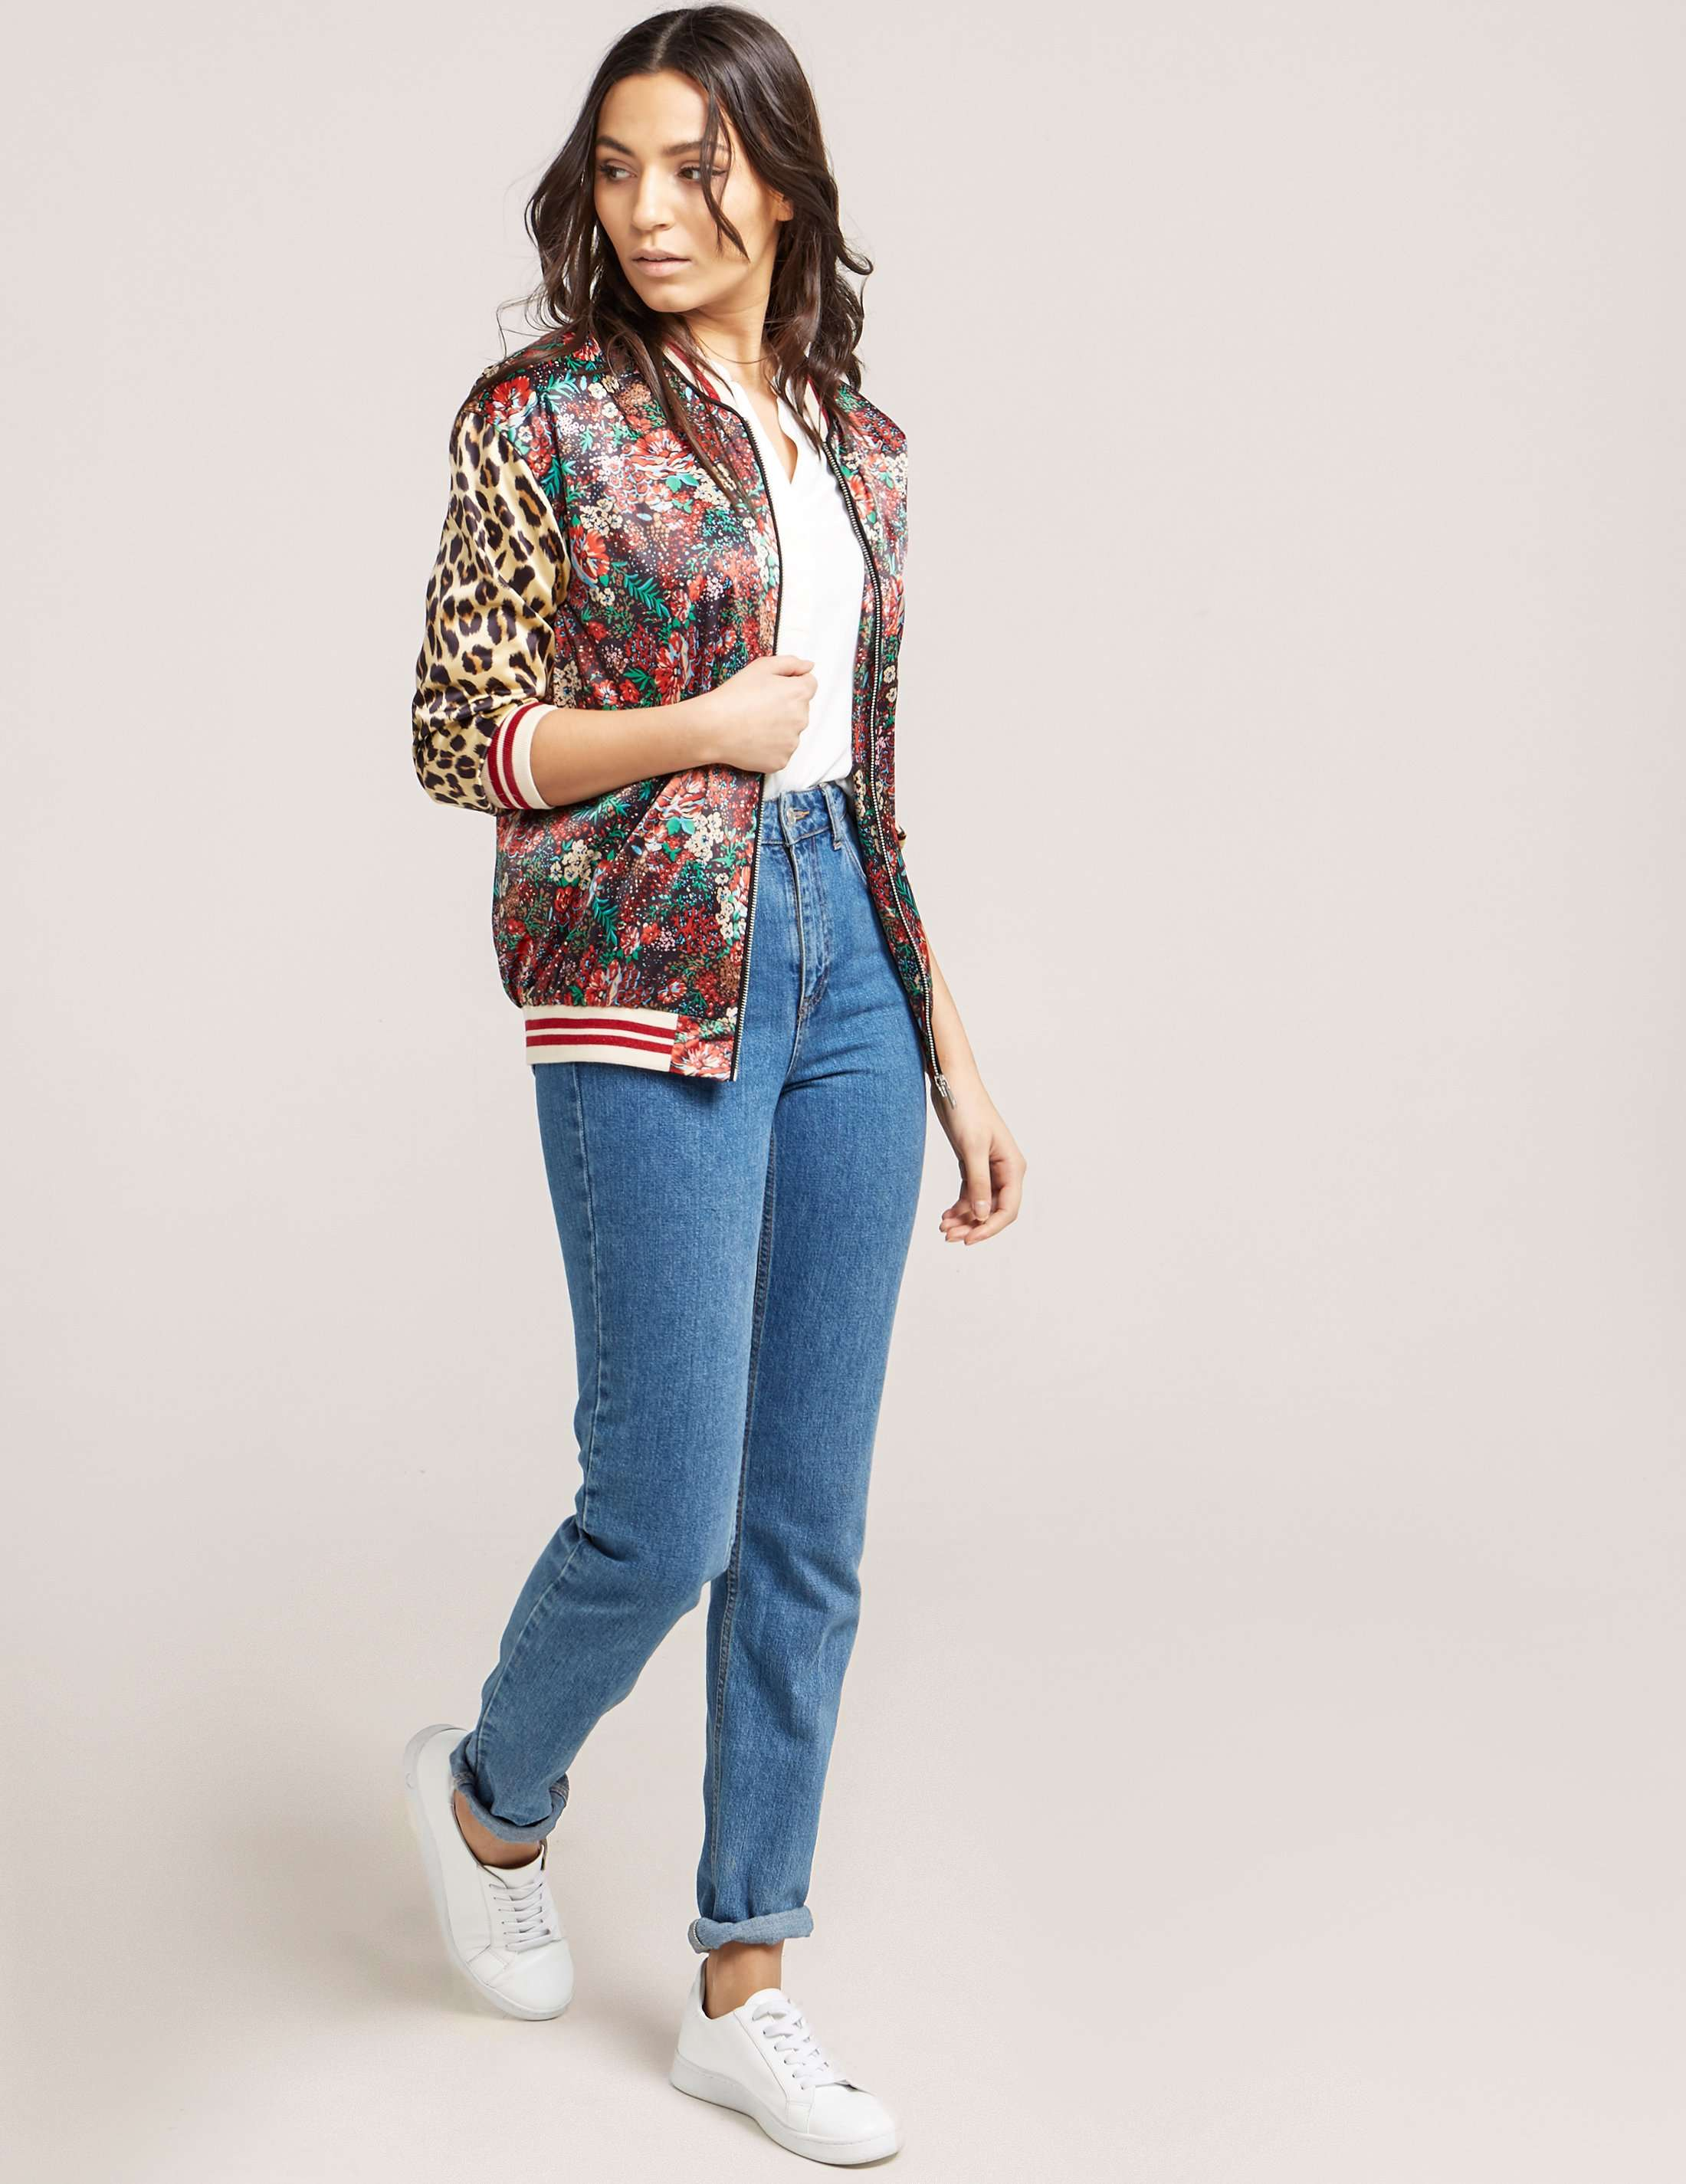 Maison Scotch Printed Bomber Jacket